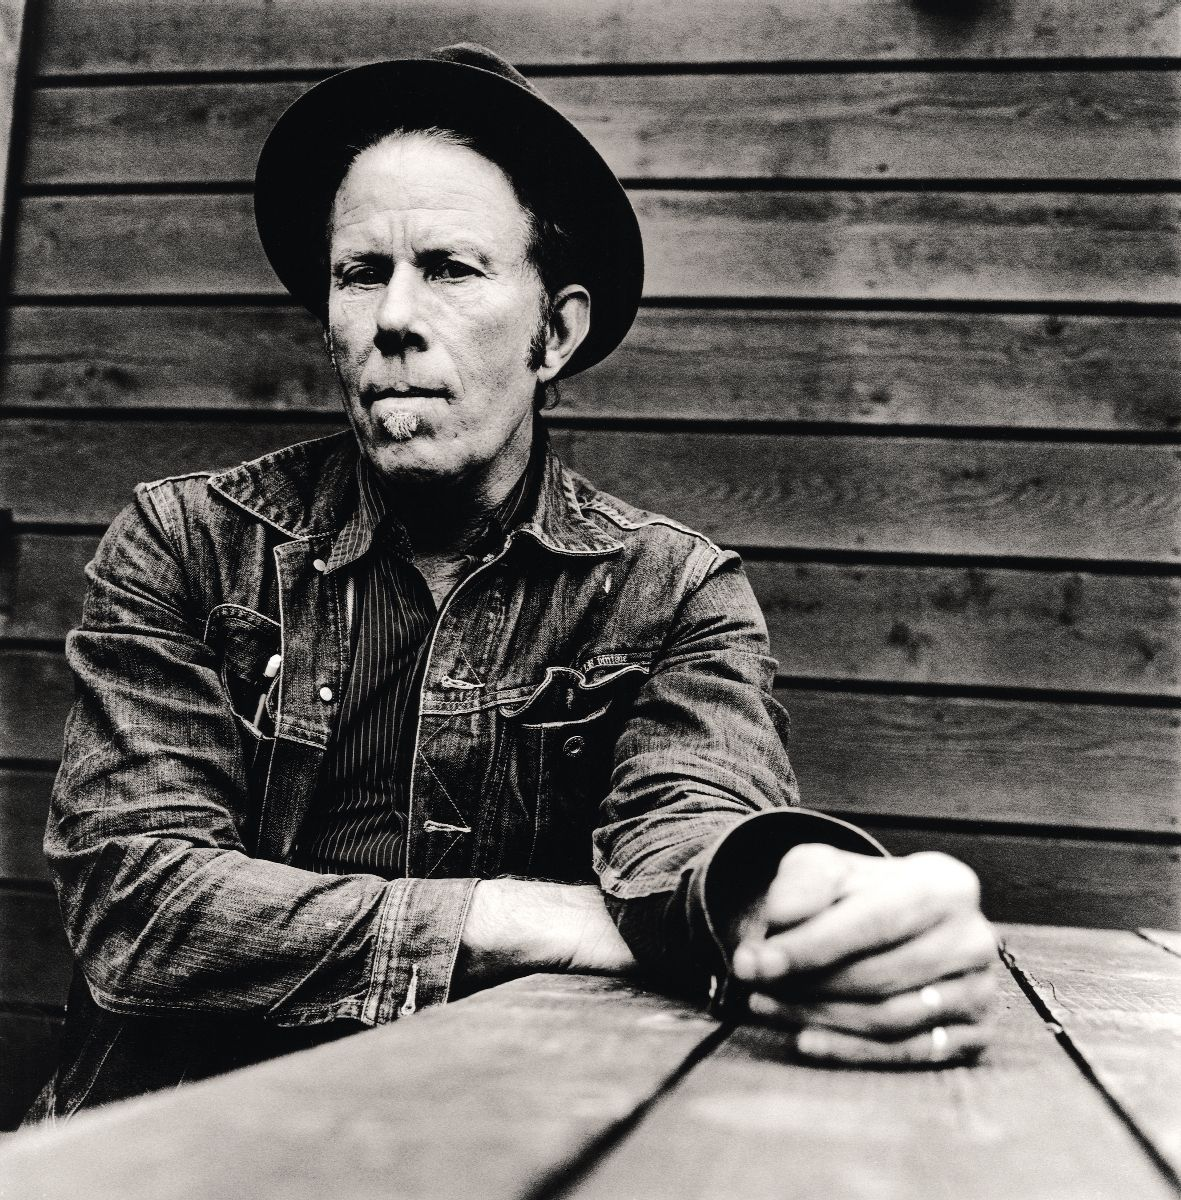 Tom Waits Estilo